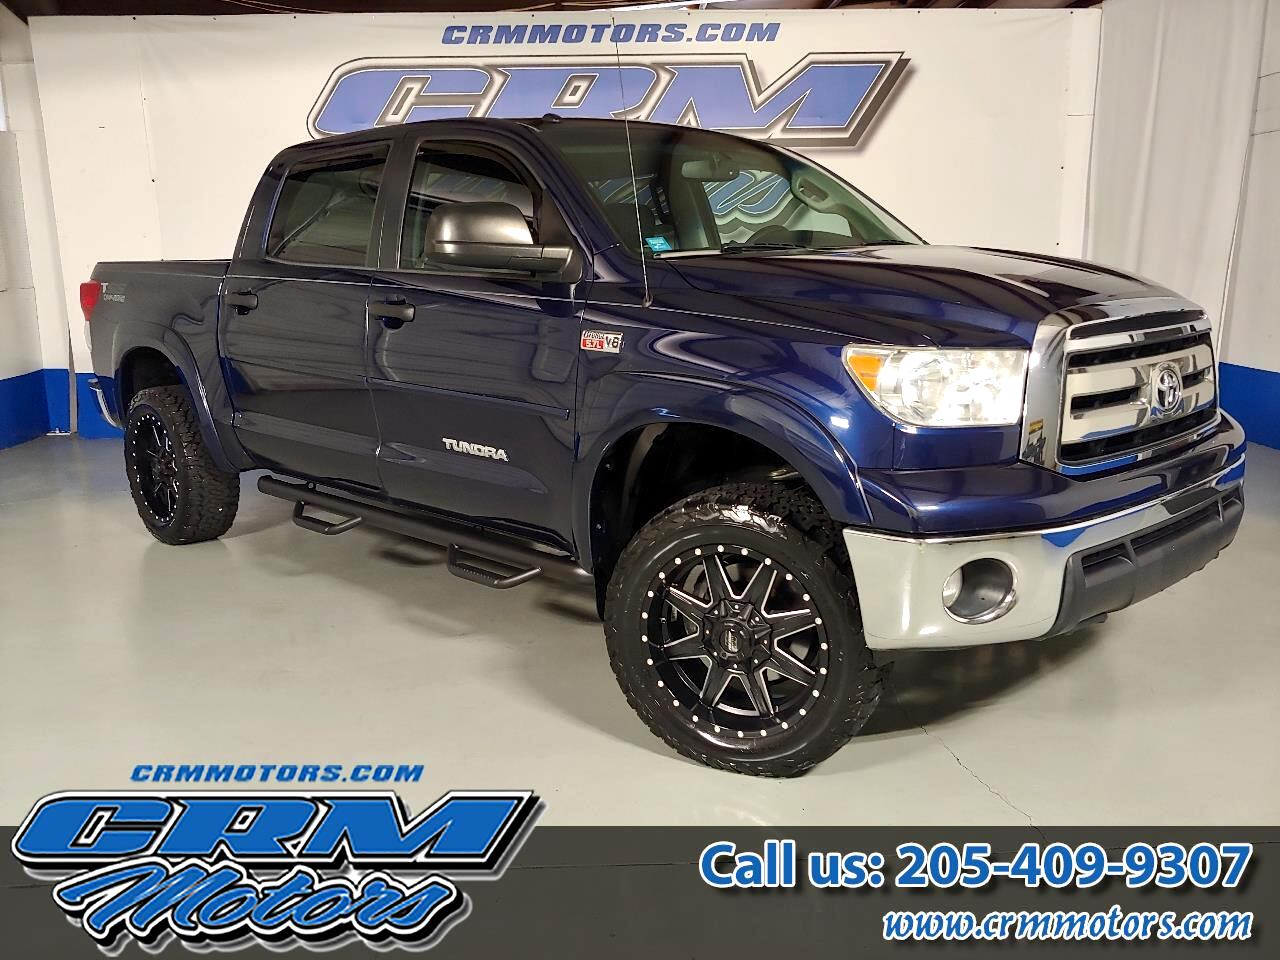 2013 Toyota Tundra 4WD Truck CREWMAX, 4WD, CUSTOM LEATHER, LIFTED, WHEELS, & TI